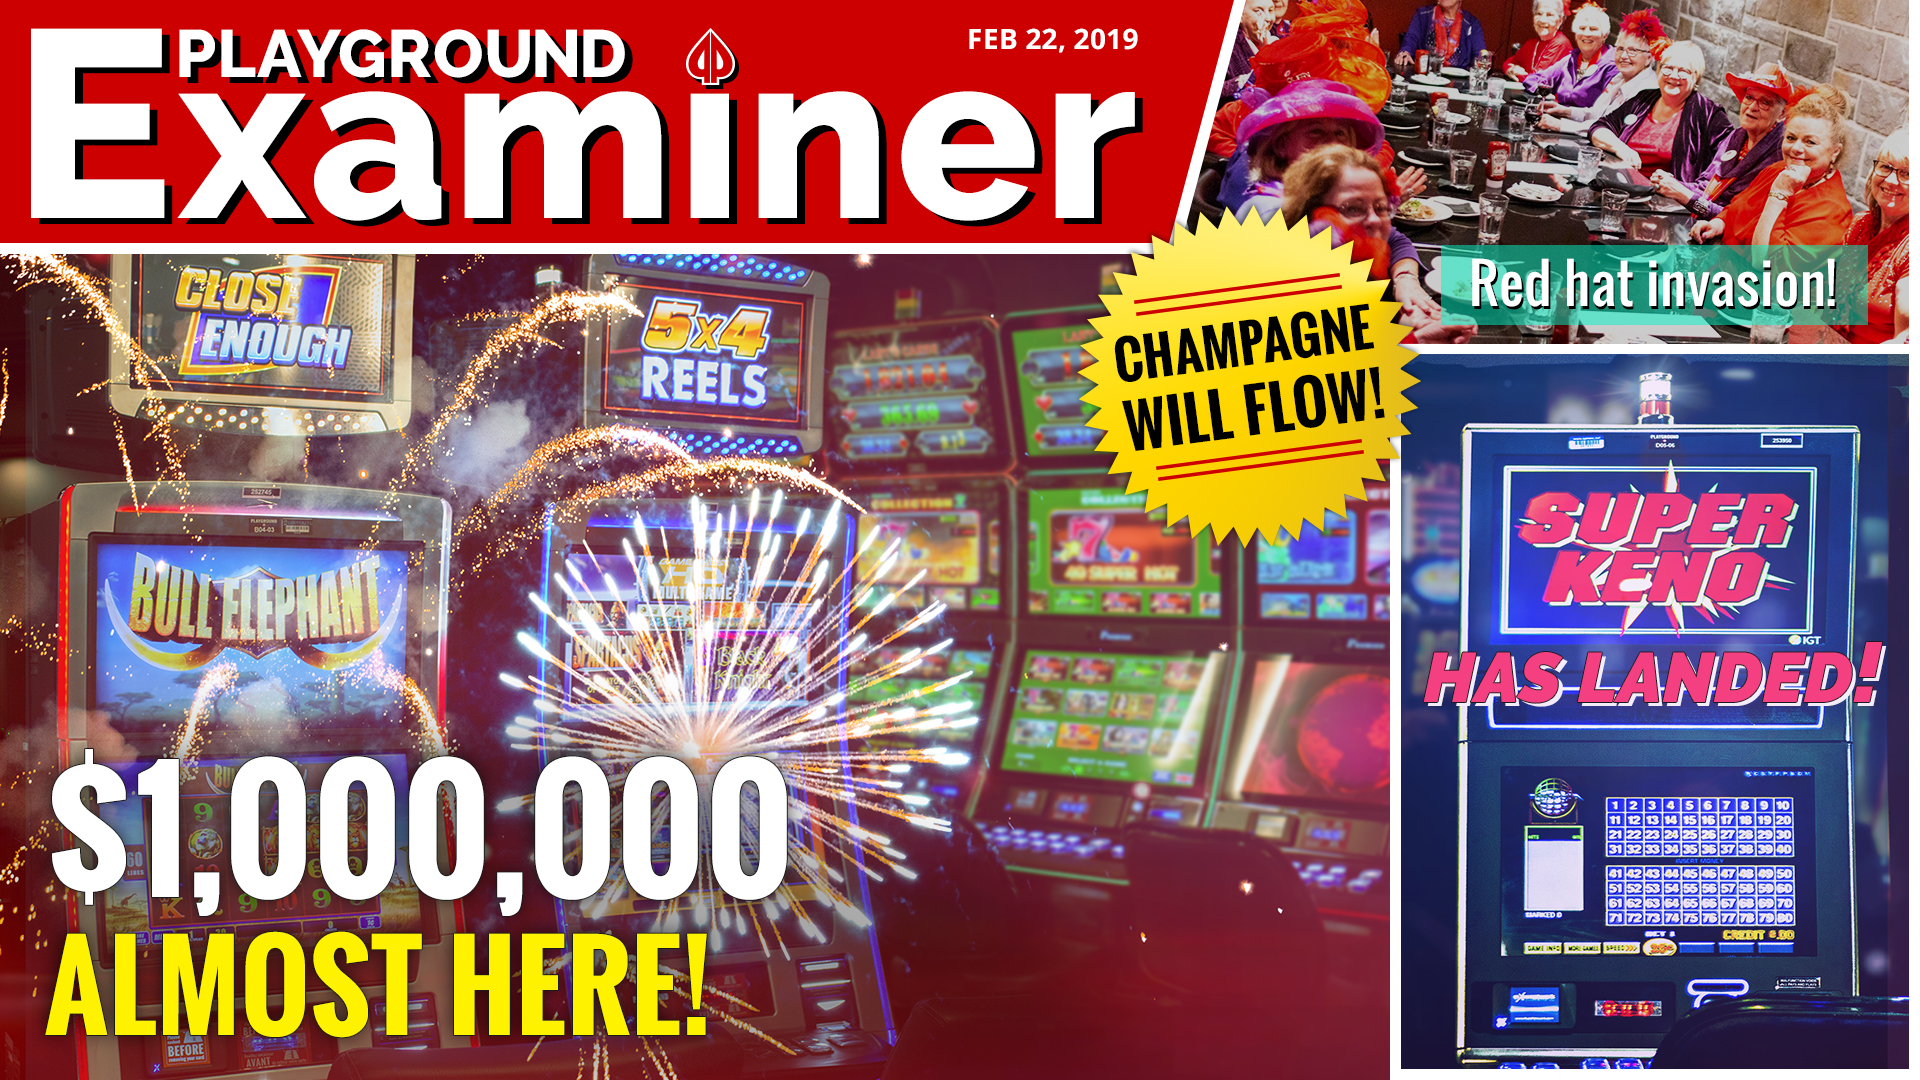 The $1,000,000 Jackpot milestone is close!